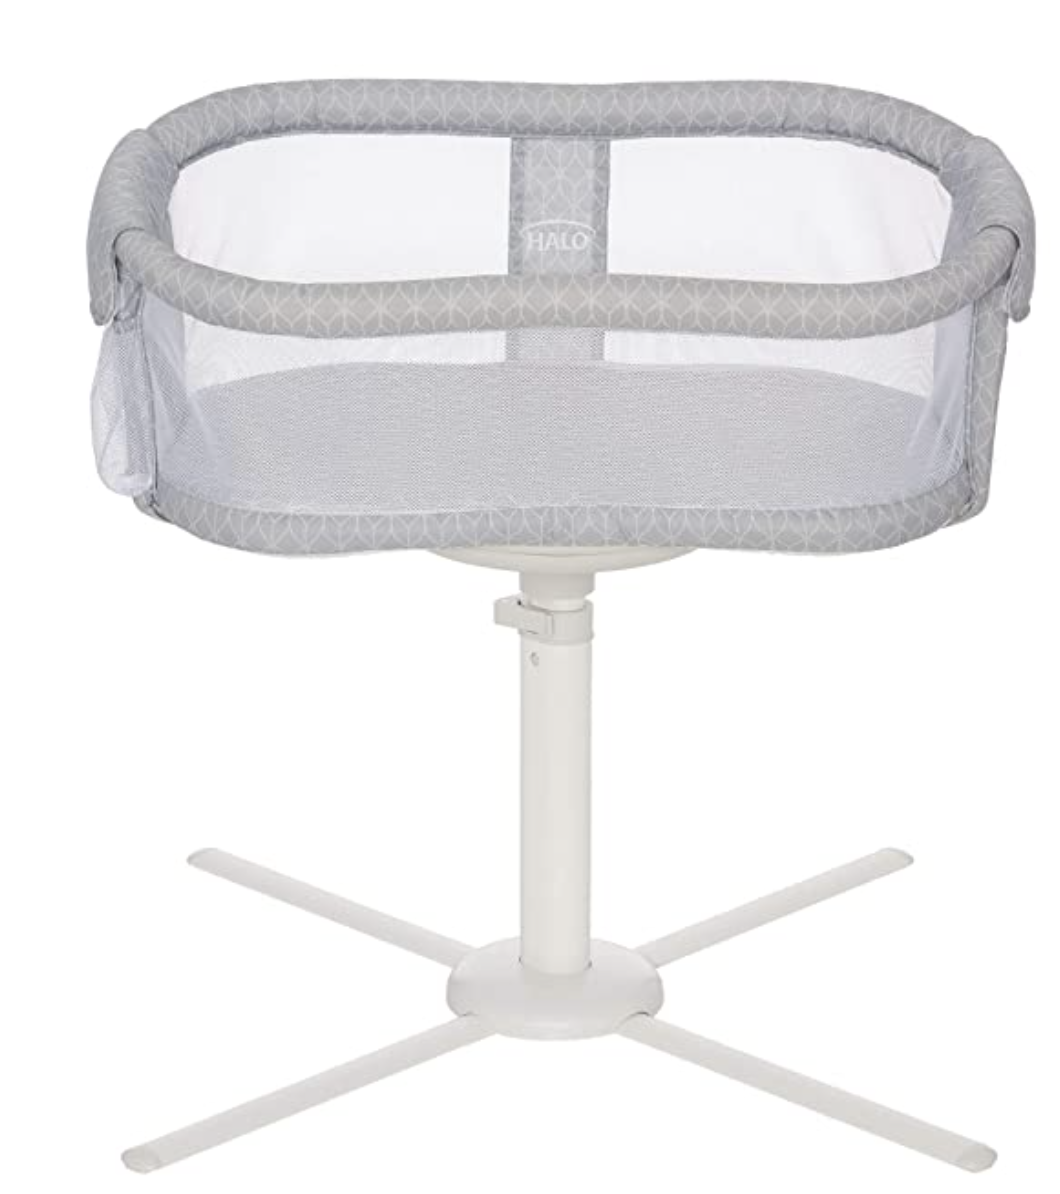 Best_Bassinet_For_Breastfeeding_HALOEssentia